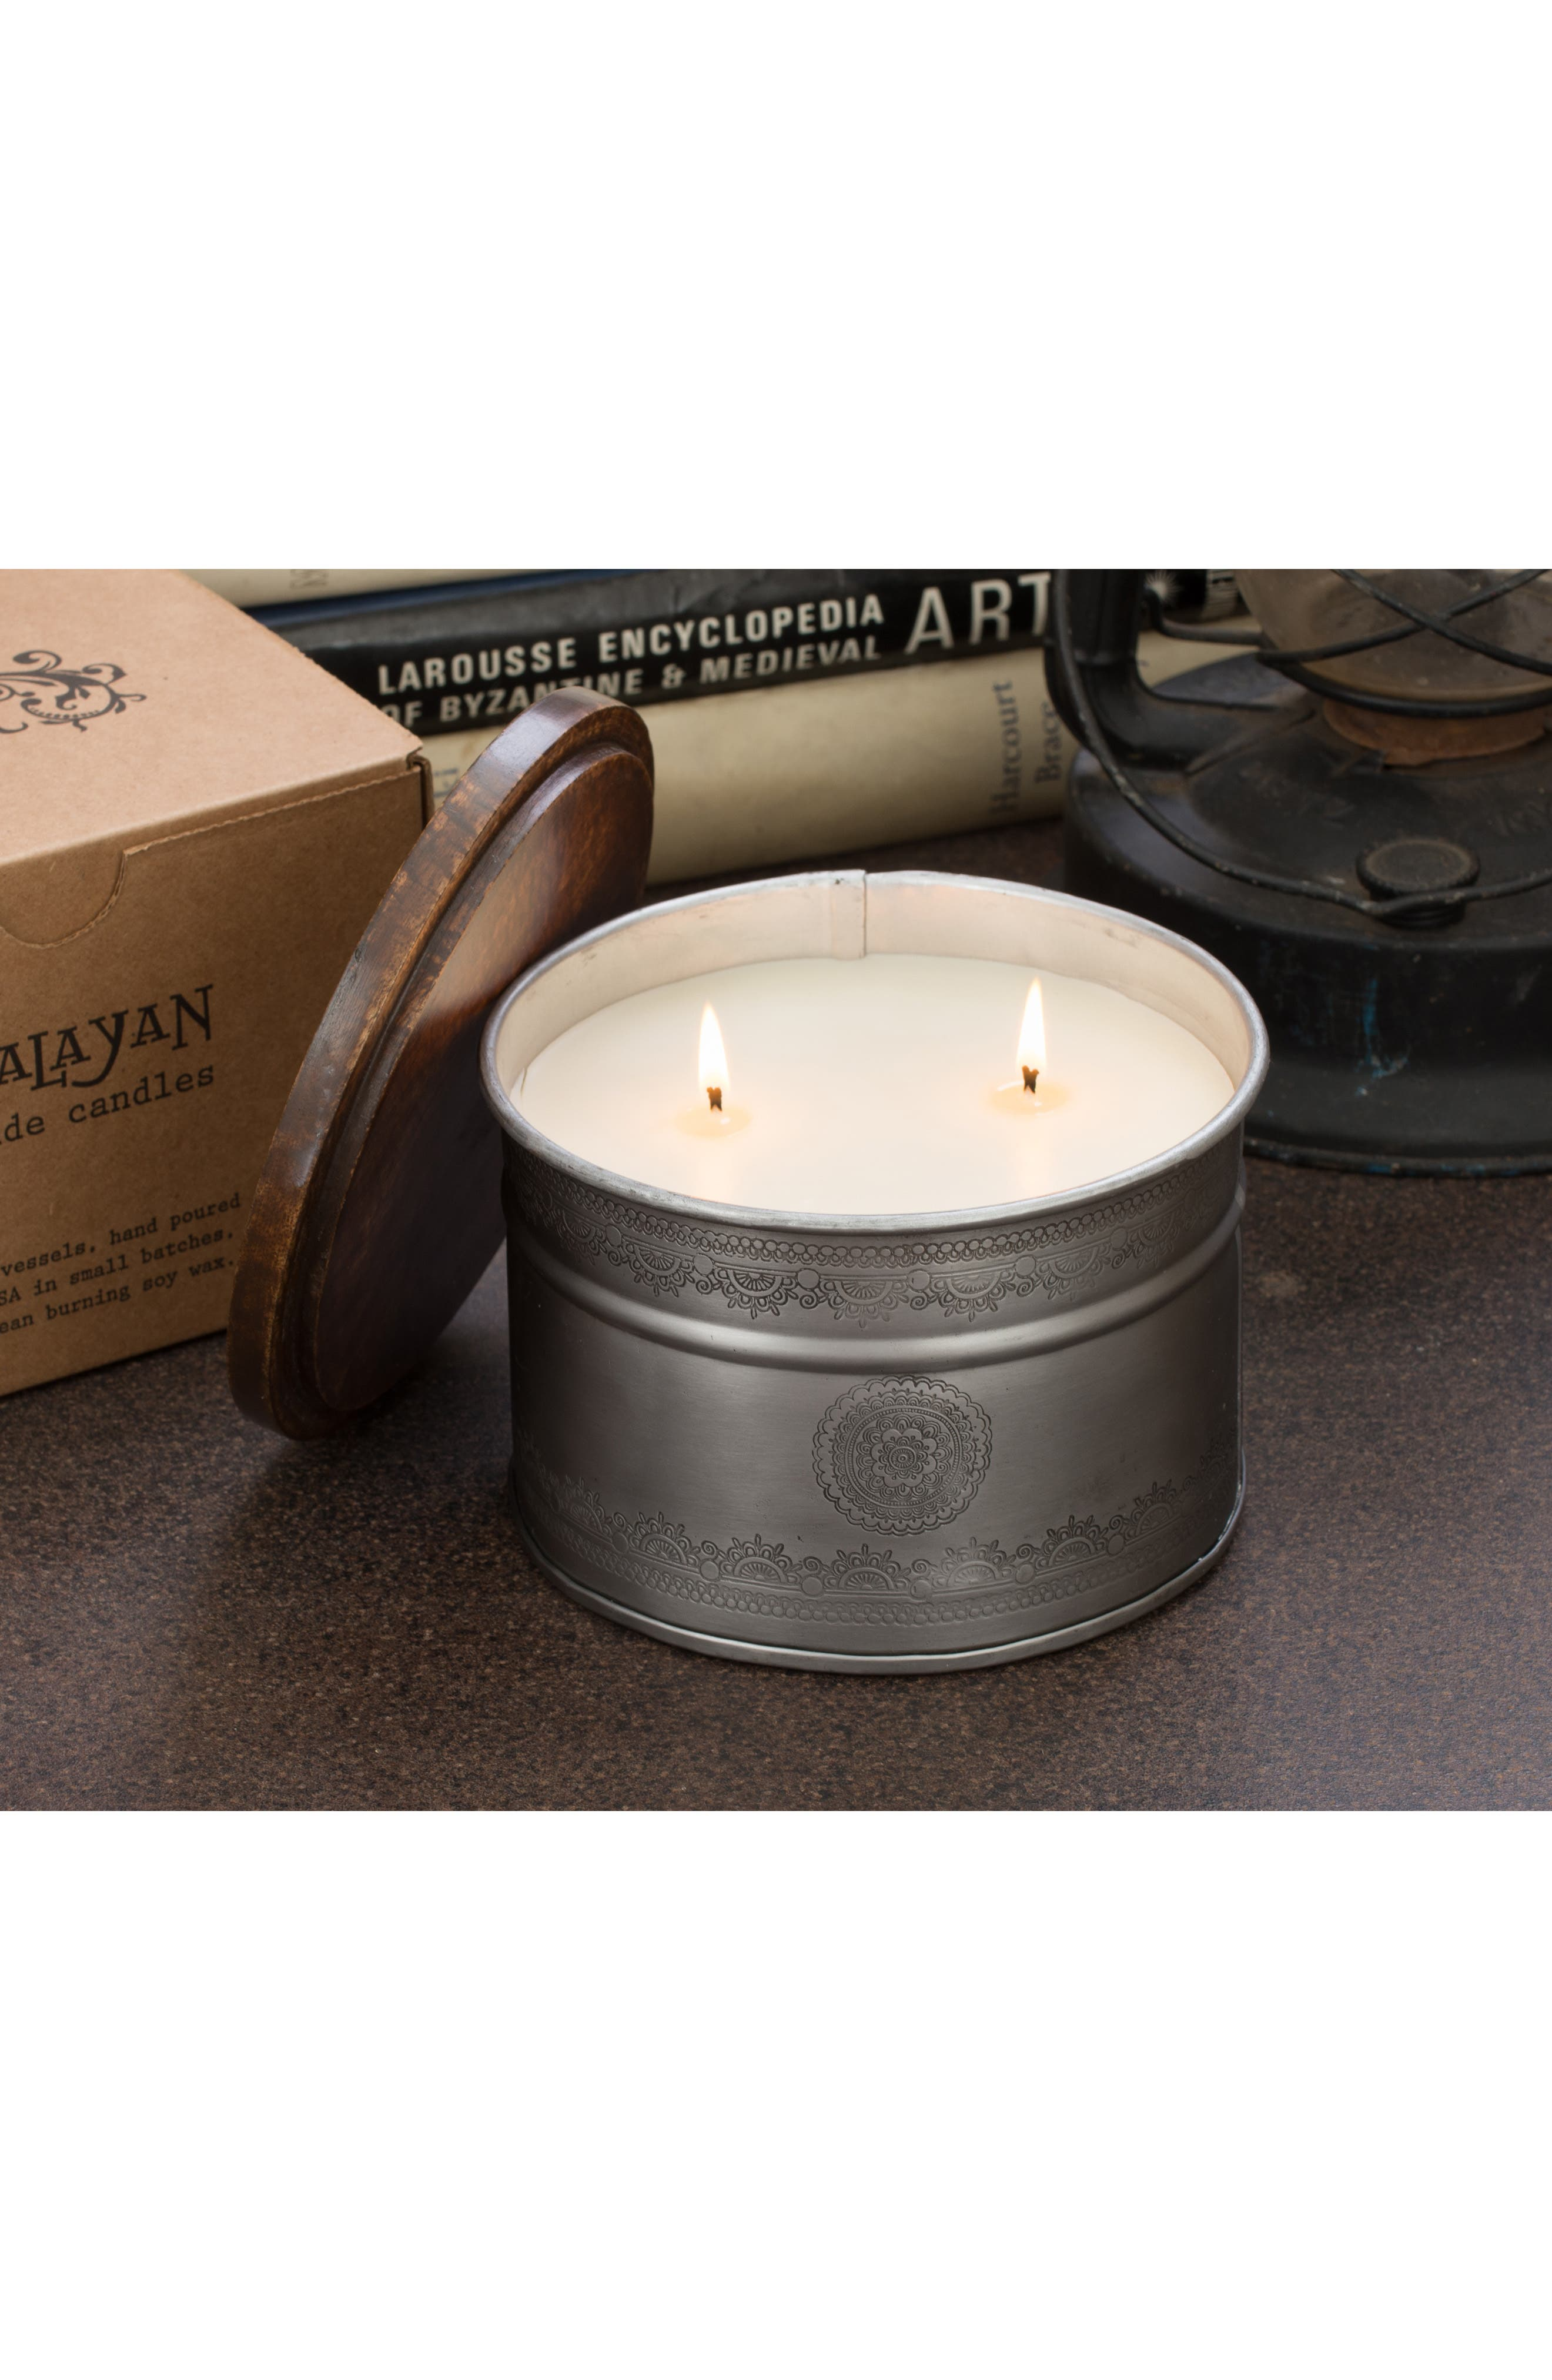 Soy Wax Candle in Etched Iron Pot,                             Alternate thumbnail 2, color,                             040